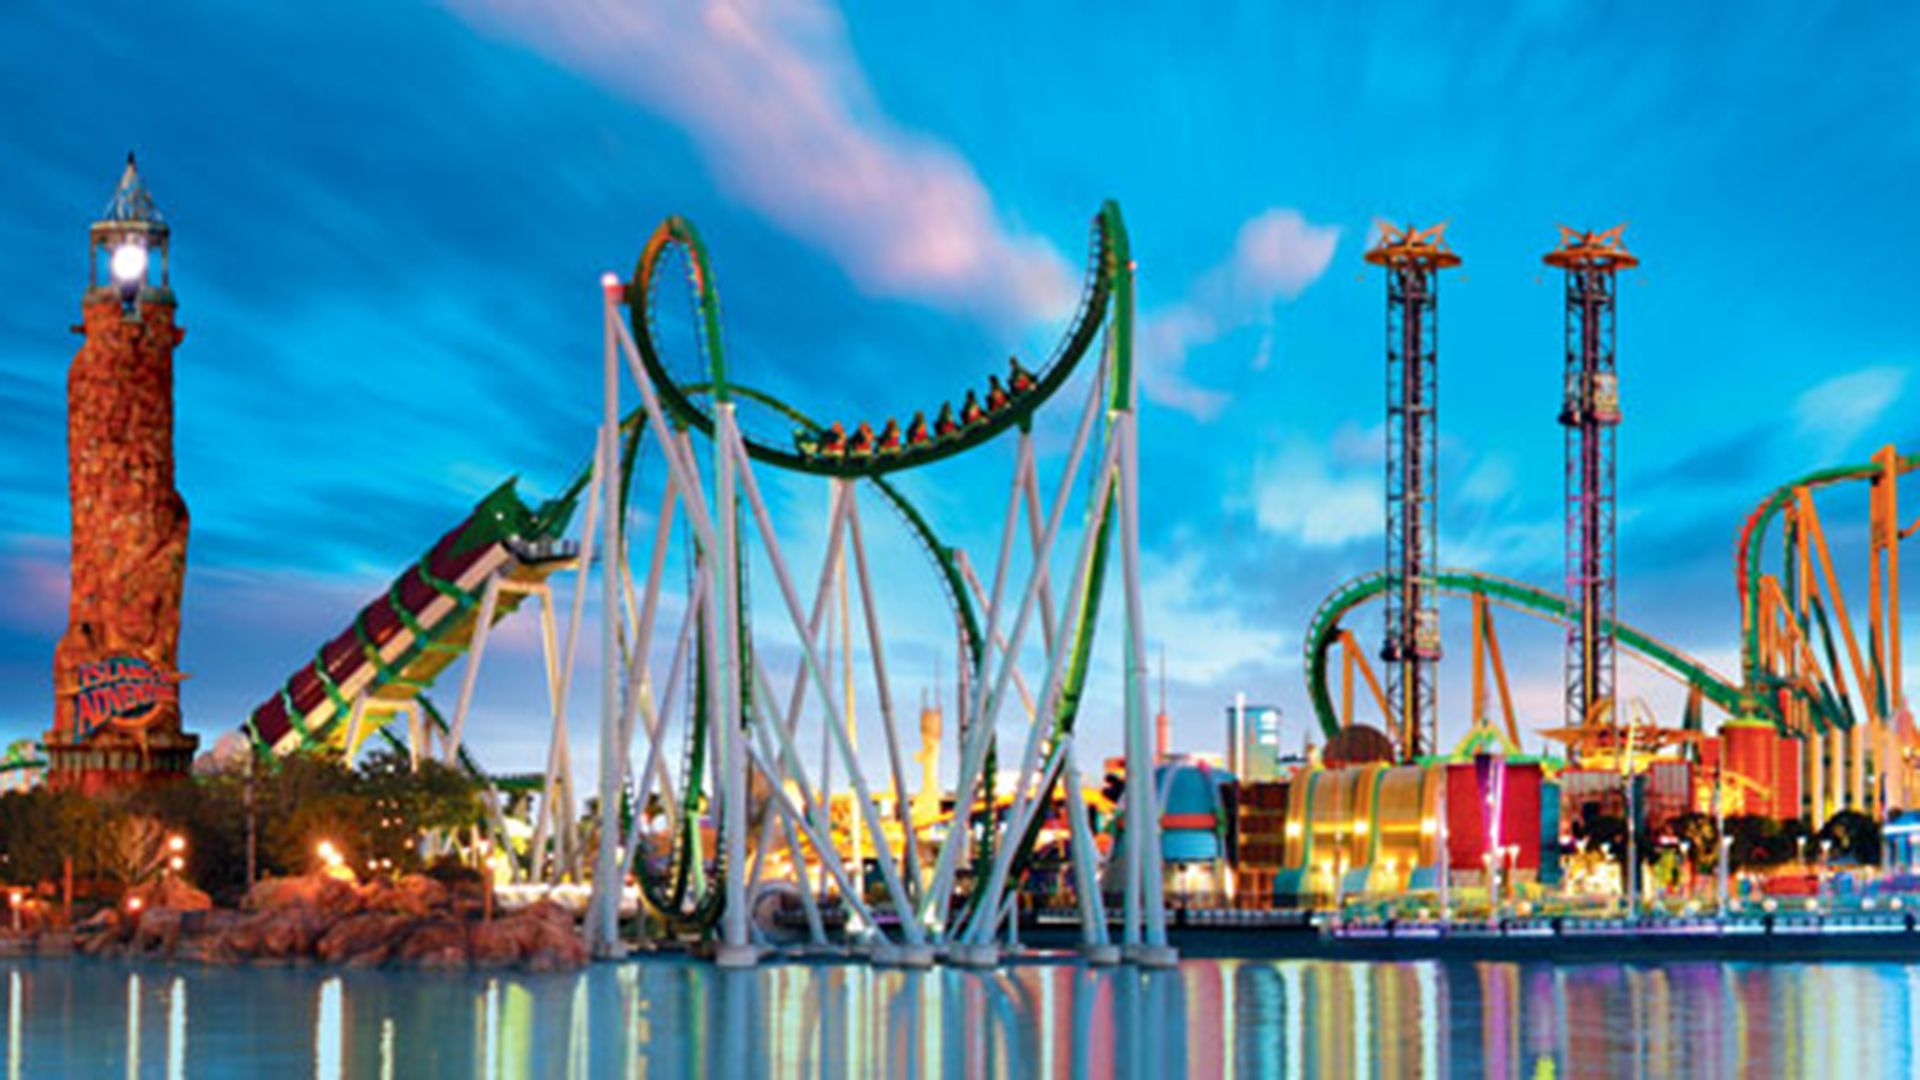 Top 10 Amusement And Water Parks In The Us According To